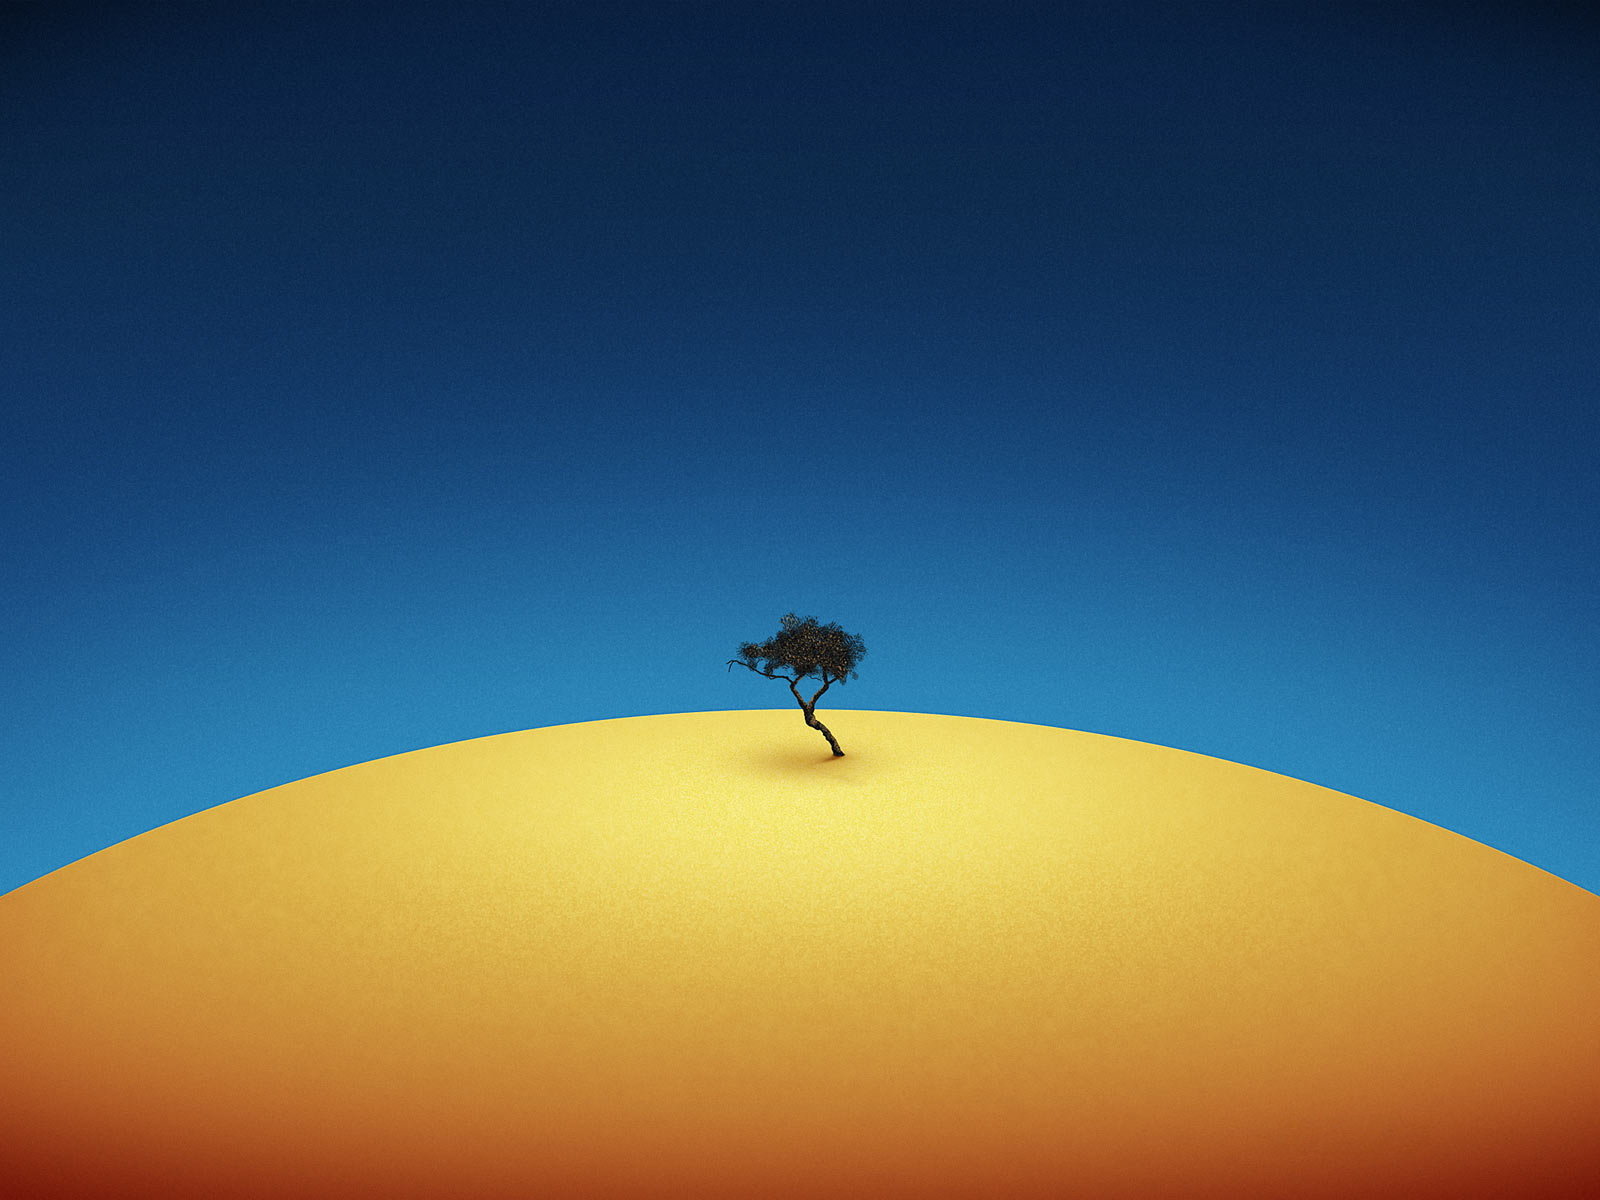 Pics-of-Nature-Landscape-an-Isolated-Tree-Among-Yellow-Desert-the-Blue-Sky